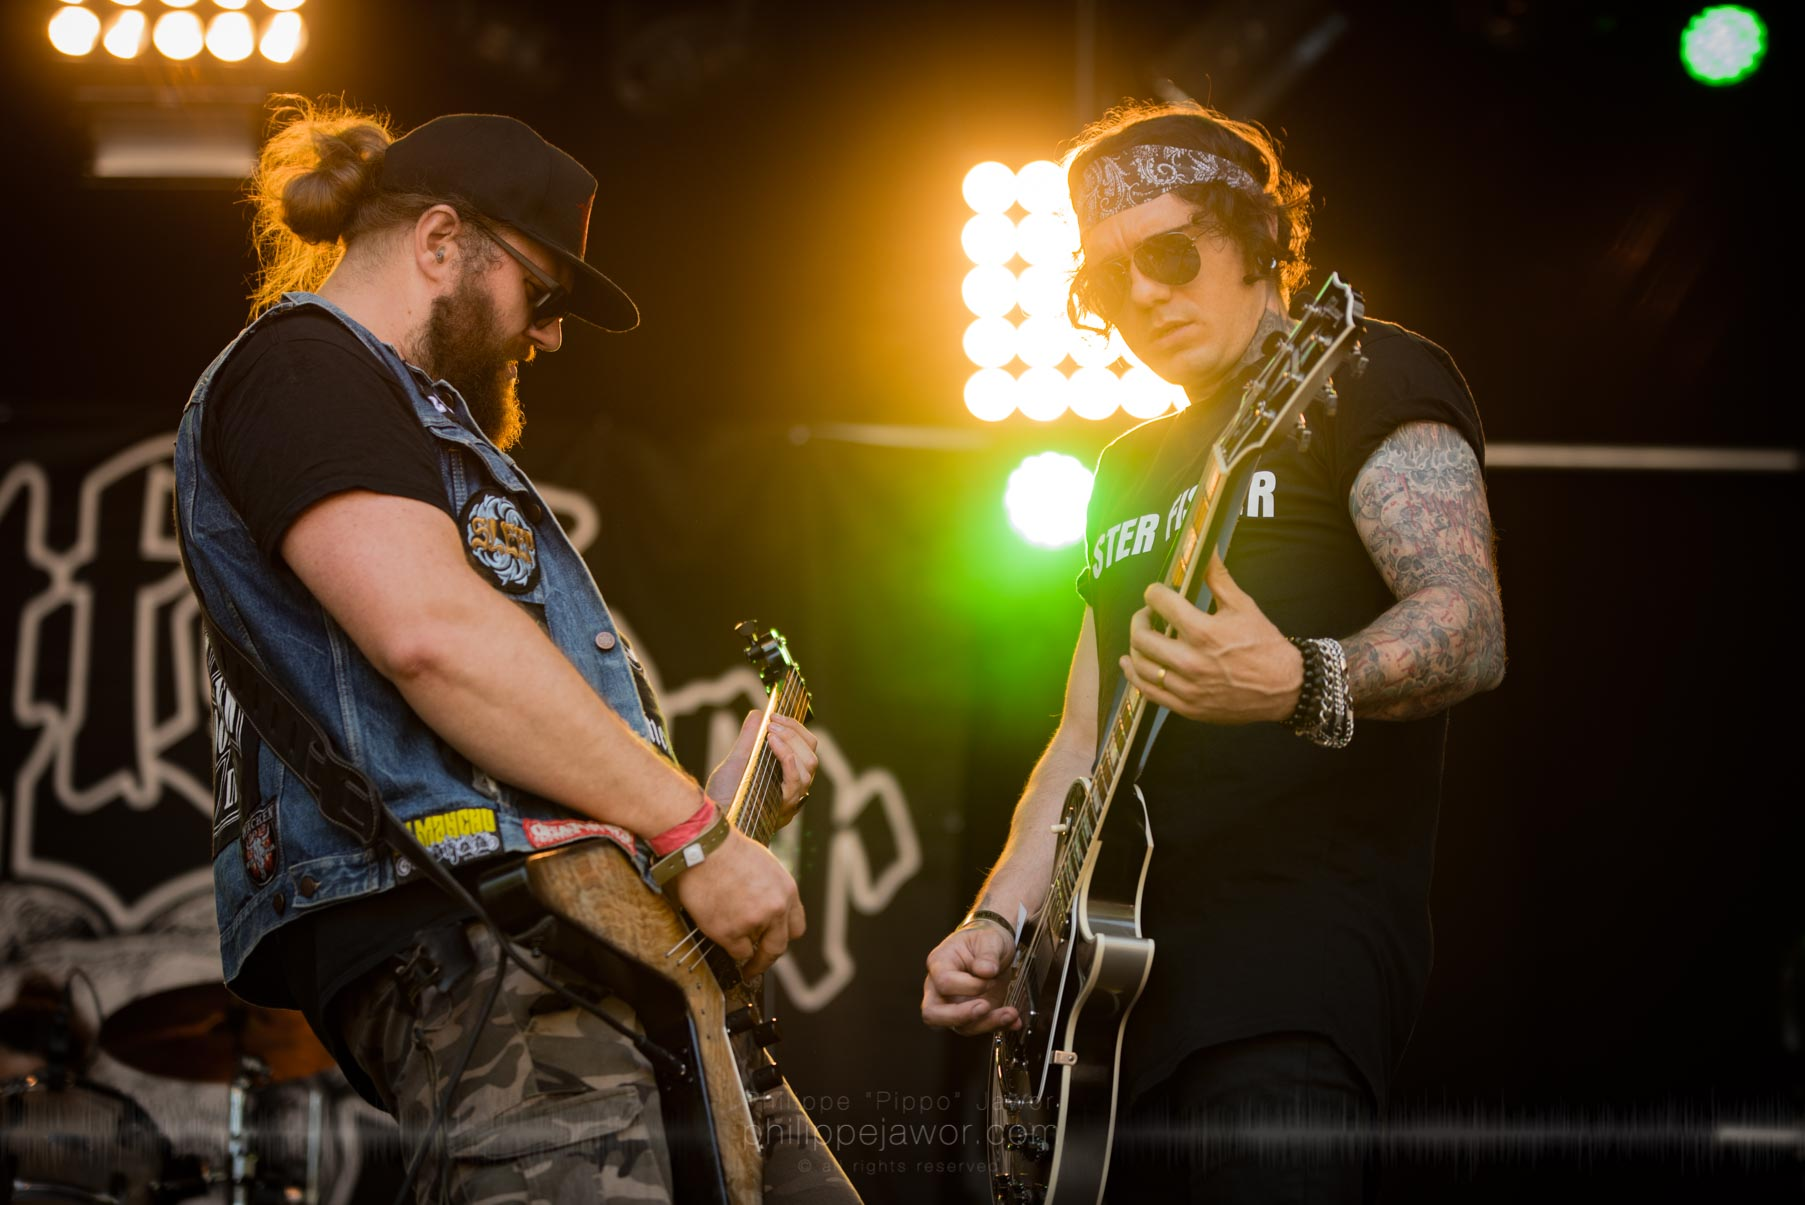 The French stoner rock band Goatfather, live at Sylak Open Air festival, Saint Maurice de Gourdans, August 2017.  On assignment for Metal Obs' Magazine All rights reserved.